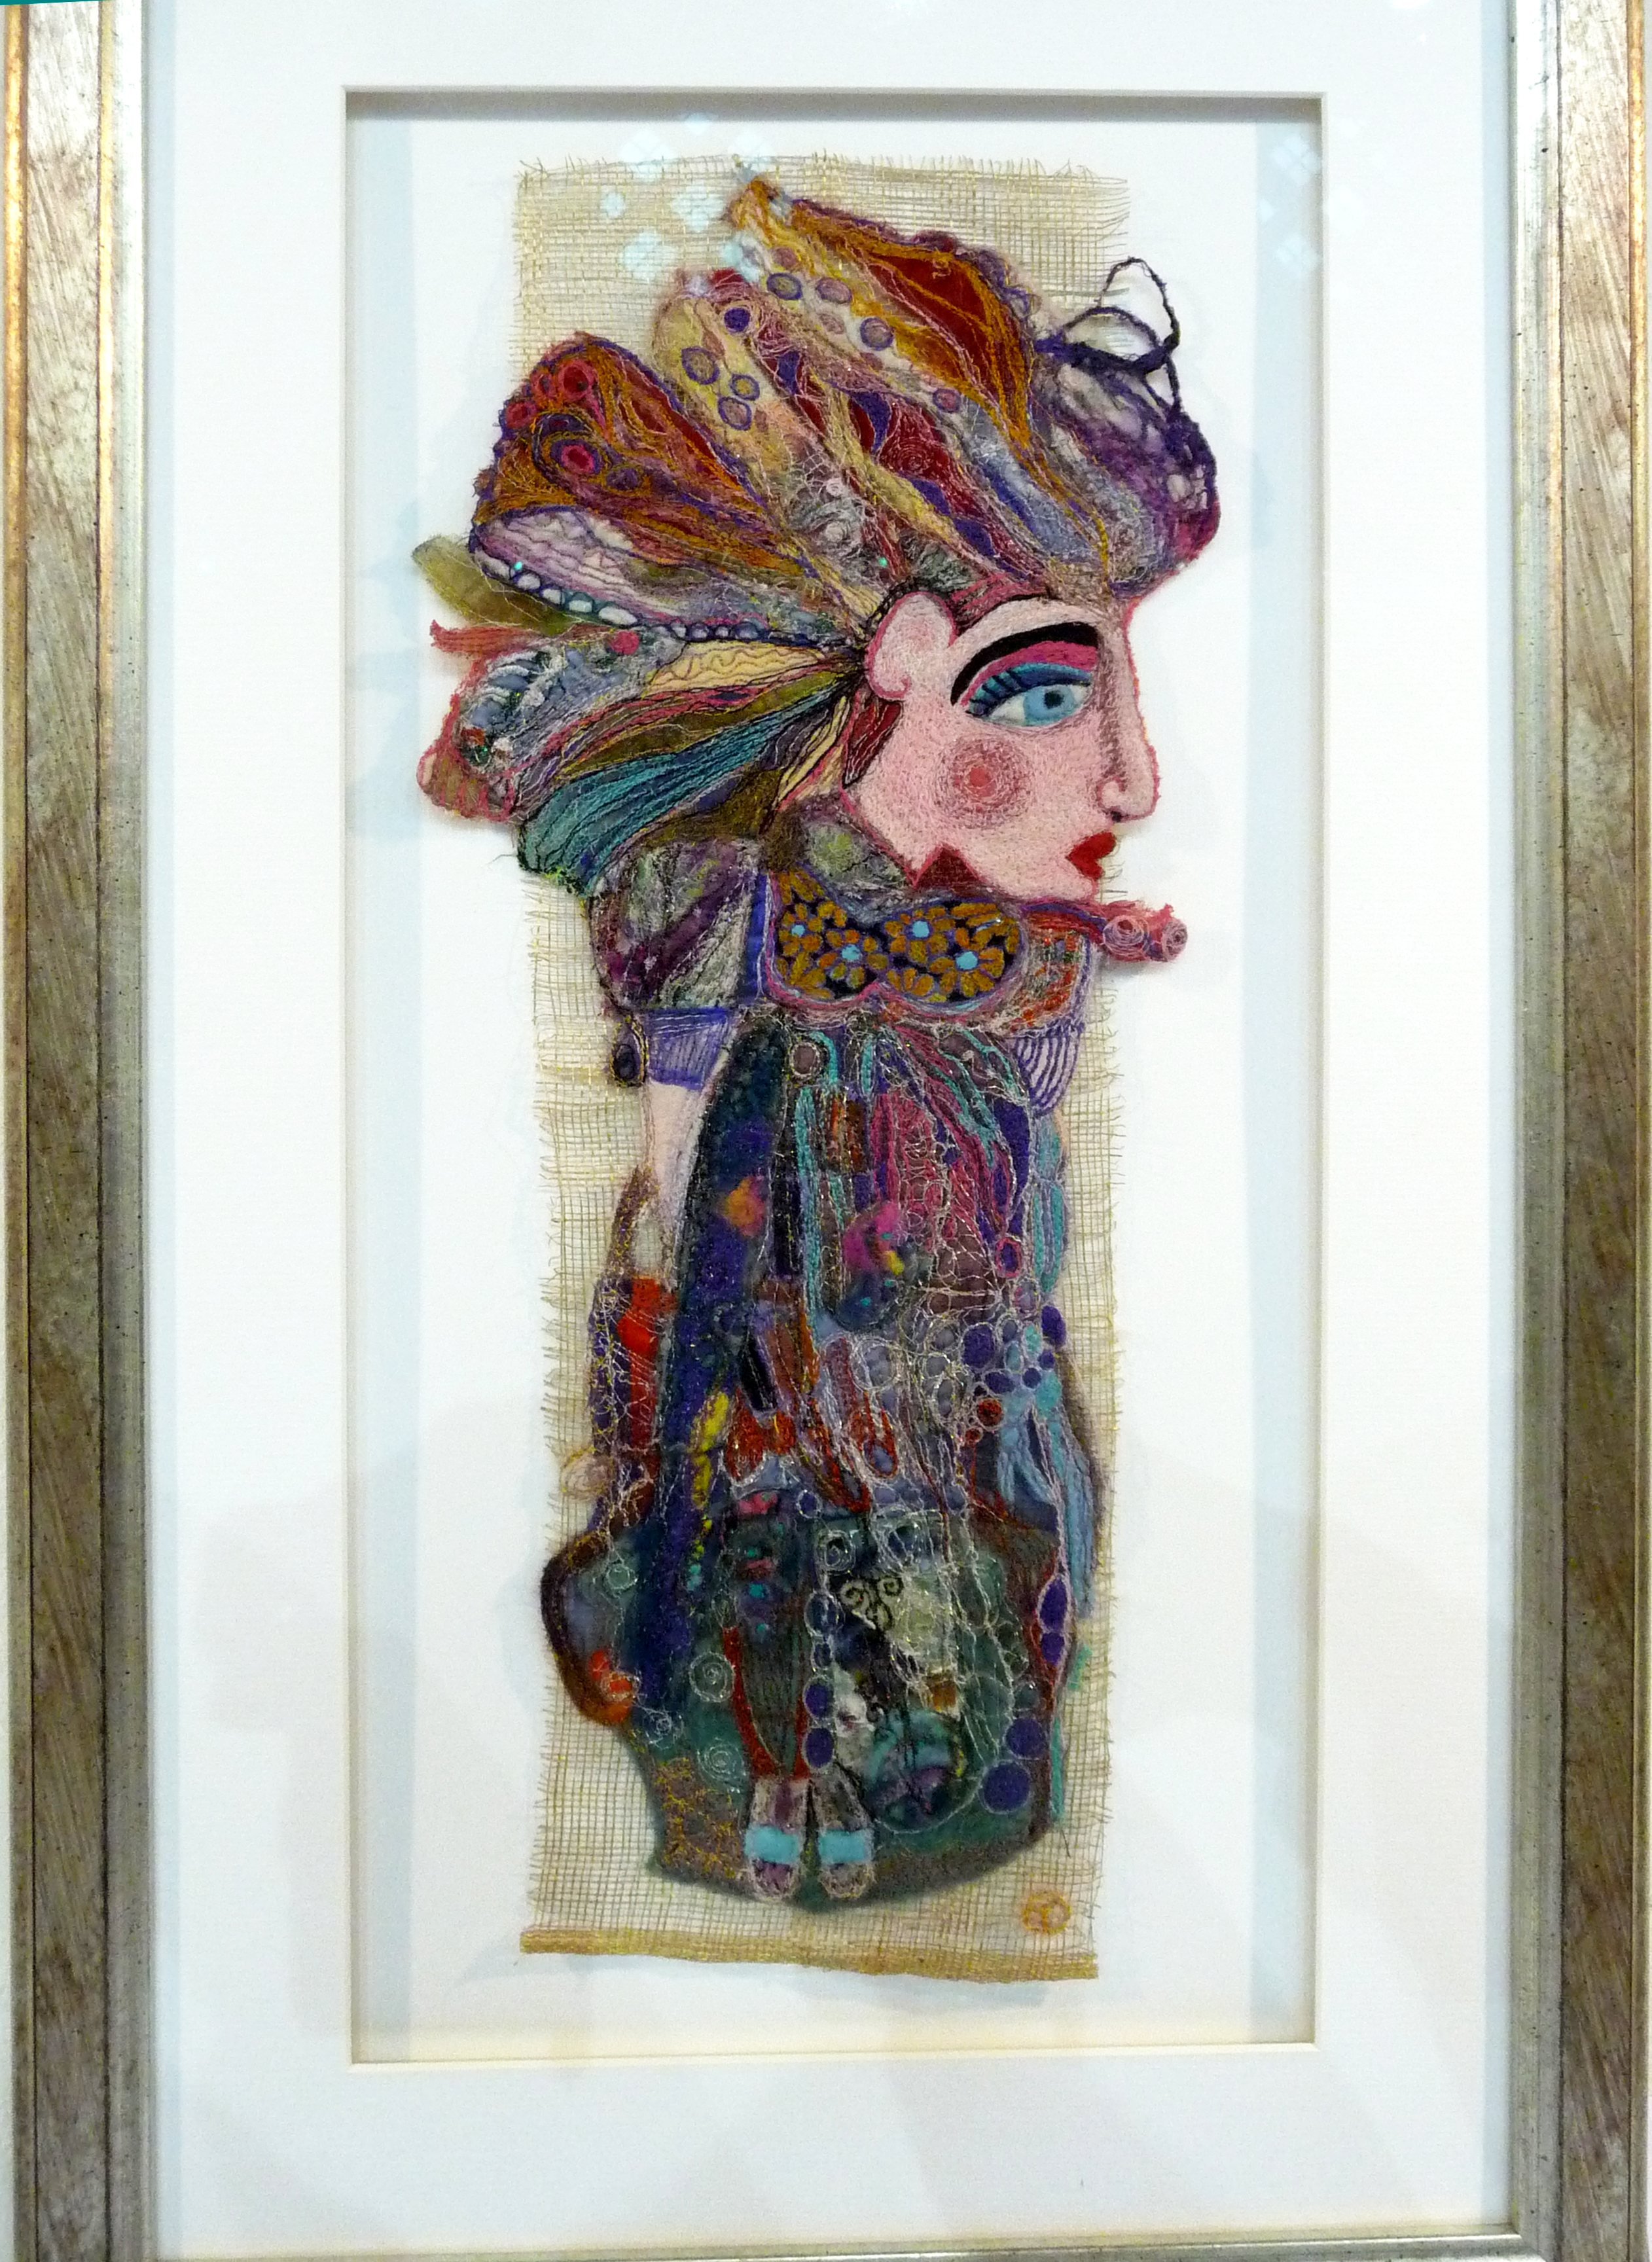 LADY INDIRA by Theresa Fox-Byrne, machine embroidery